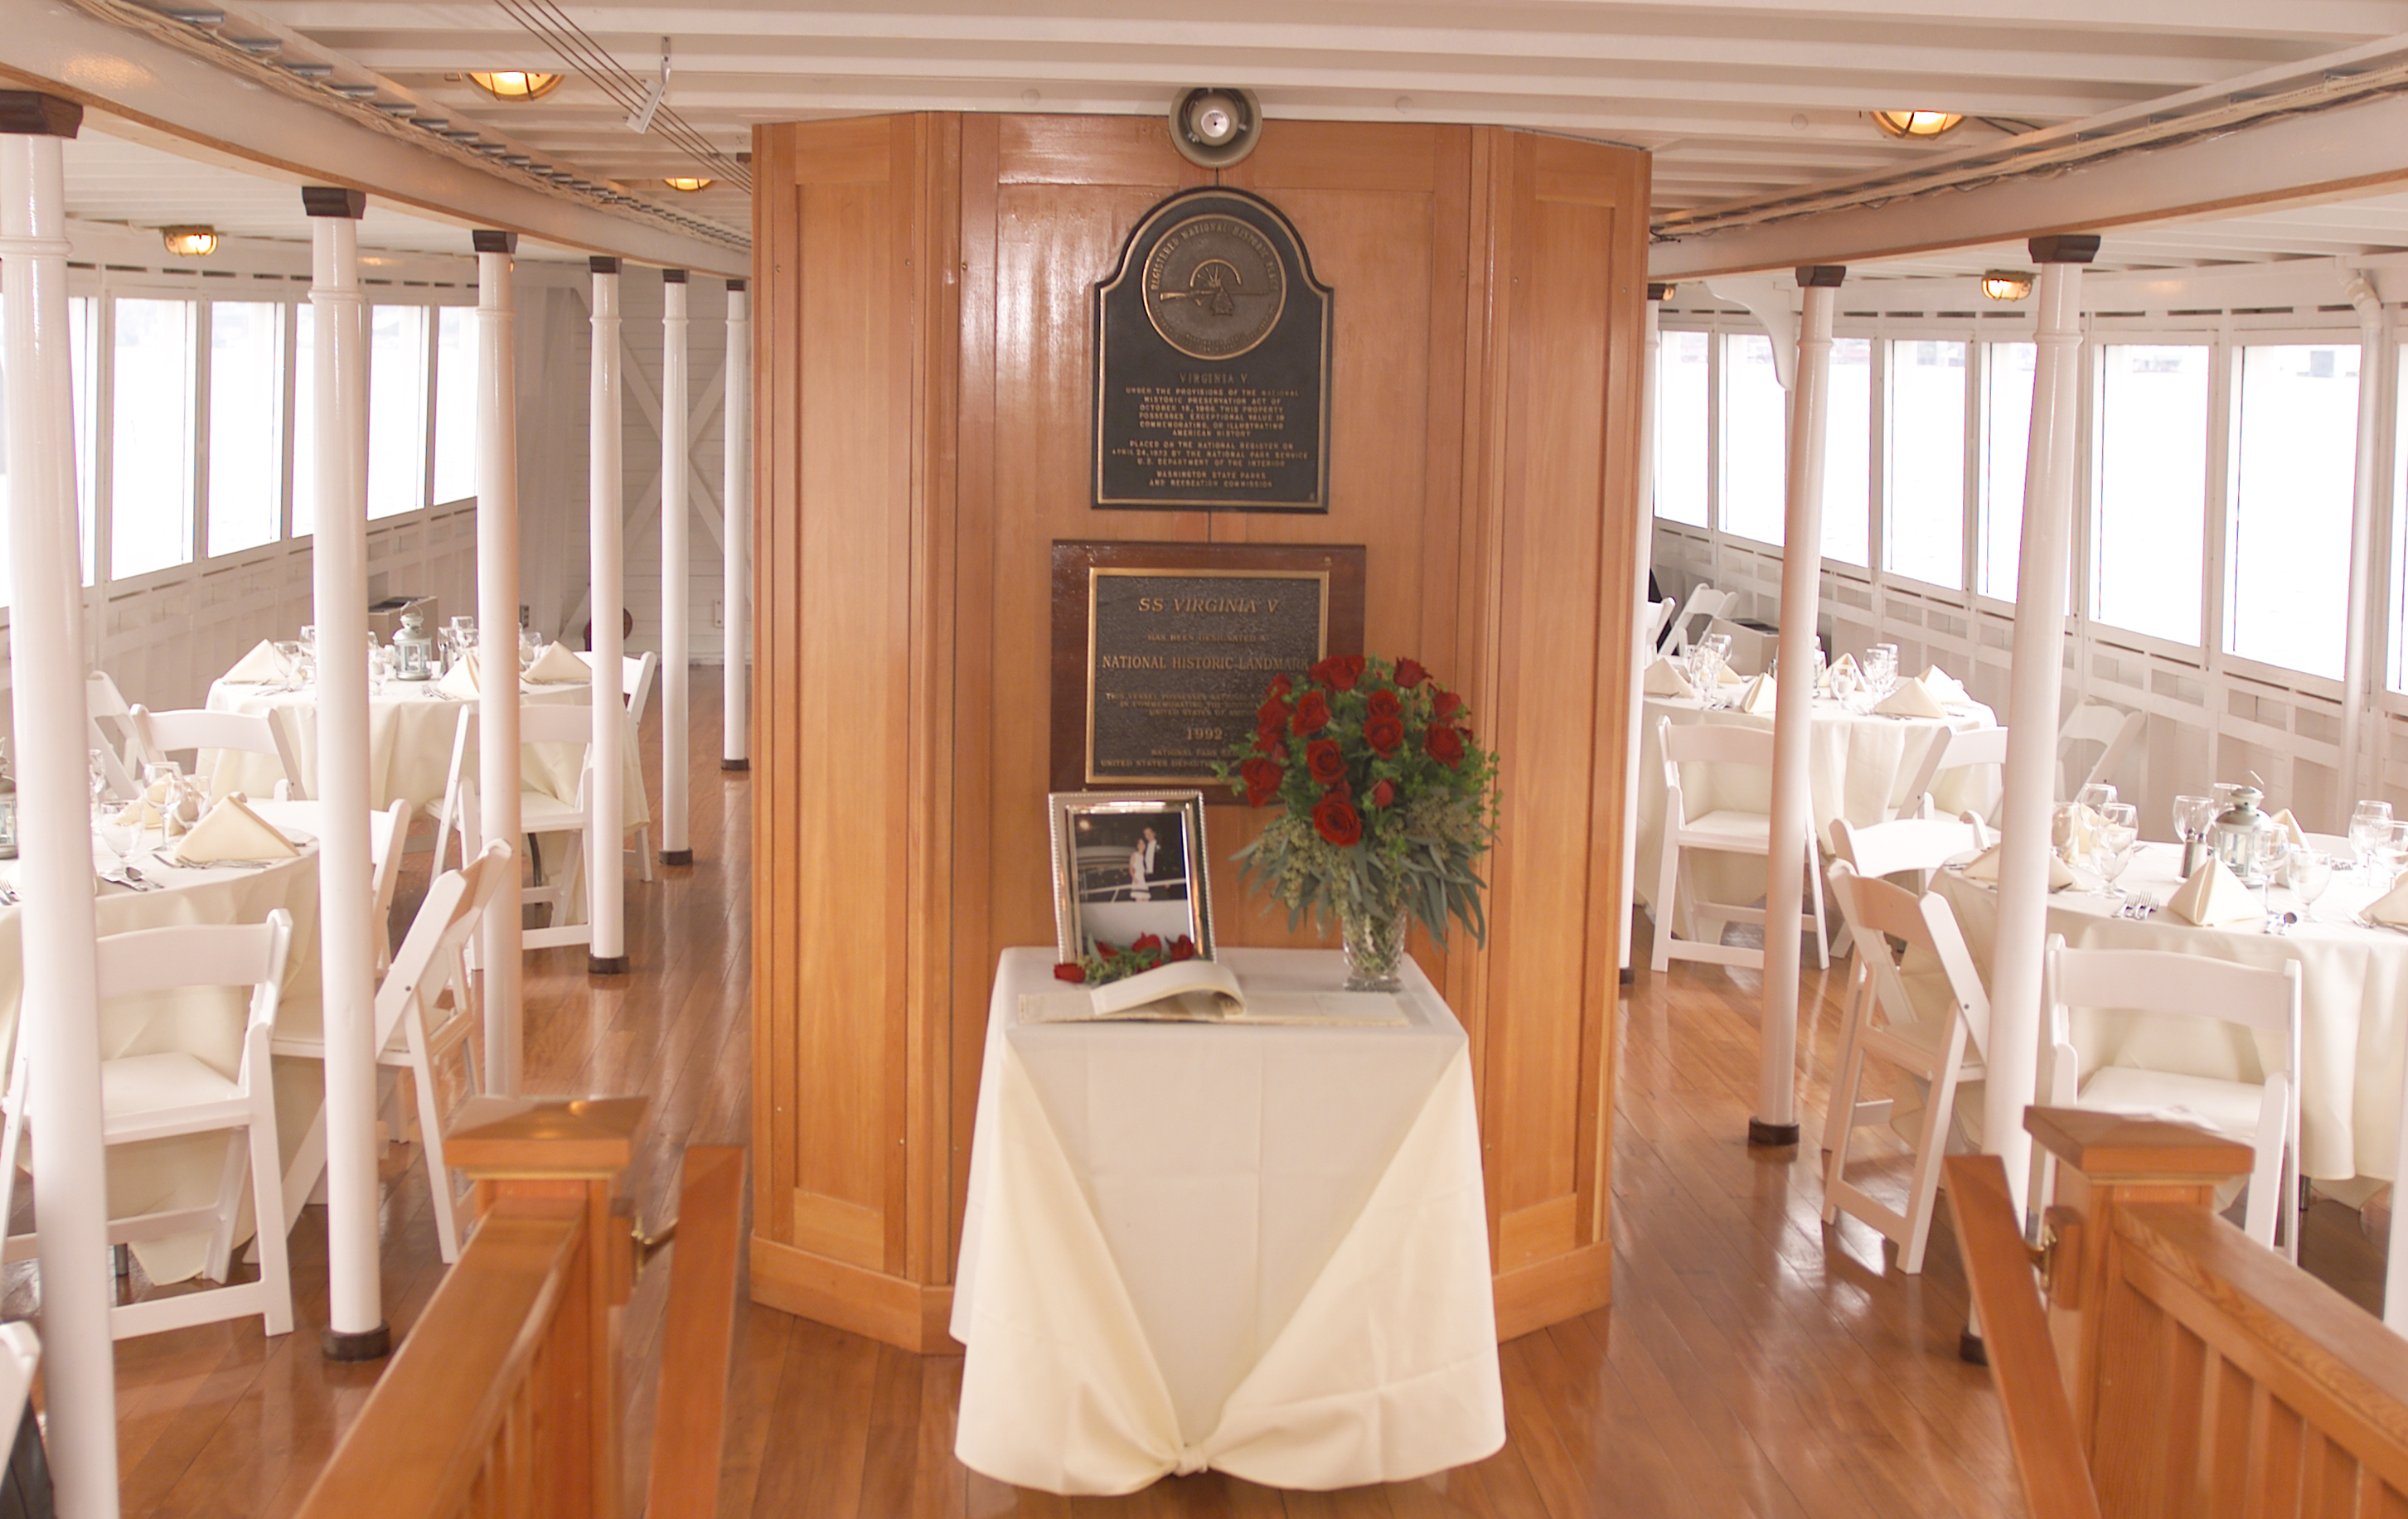 Reception, Flowers & Decor, Destinations, Cruise, Boat, Ship, Virginia v steamship, Table setup